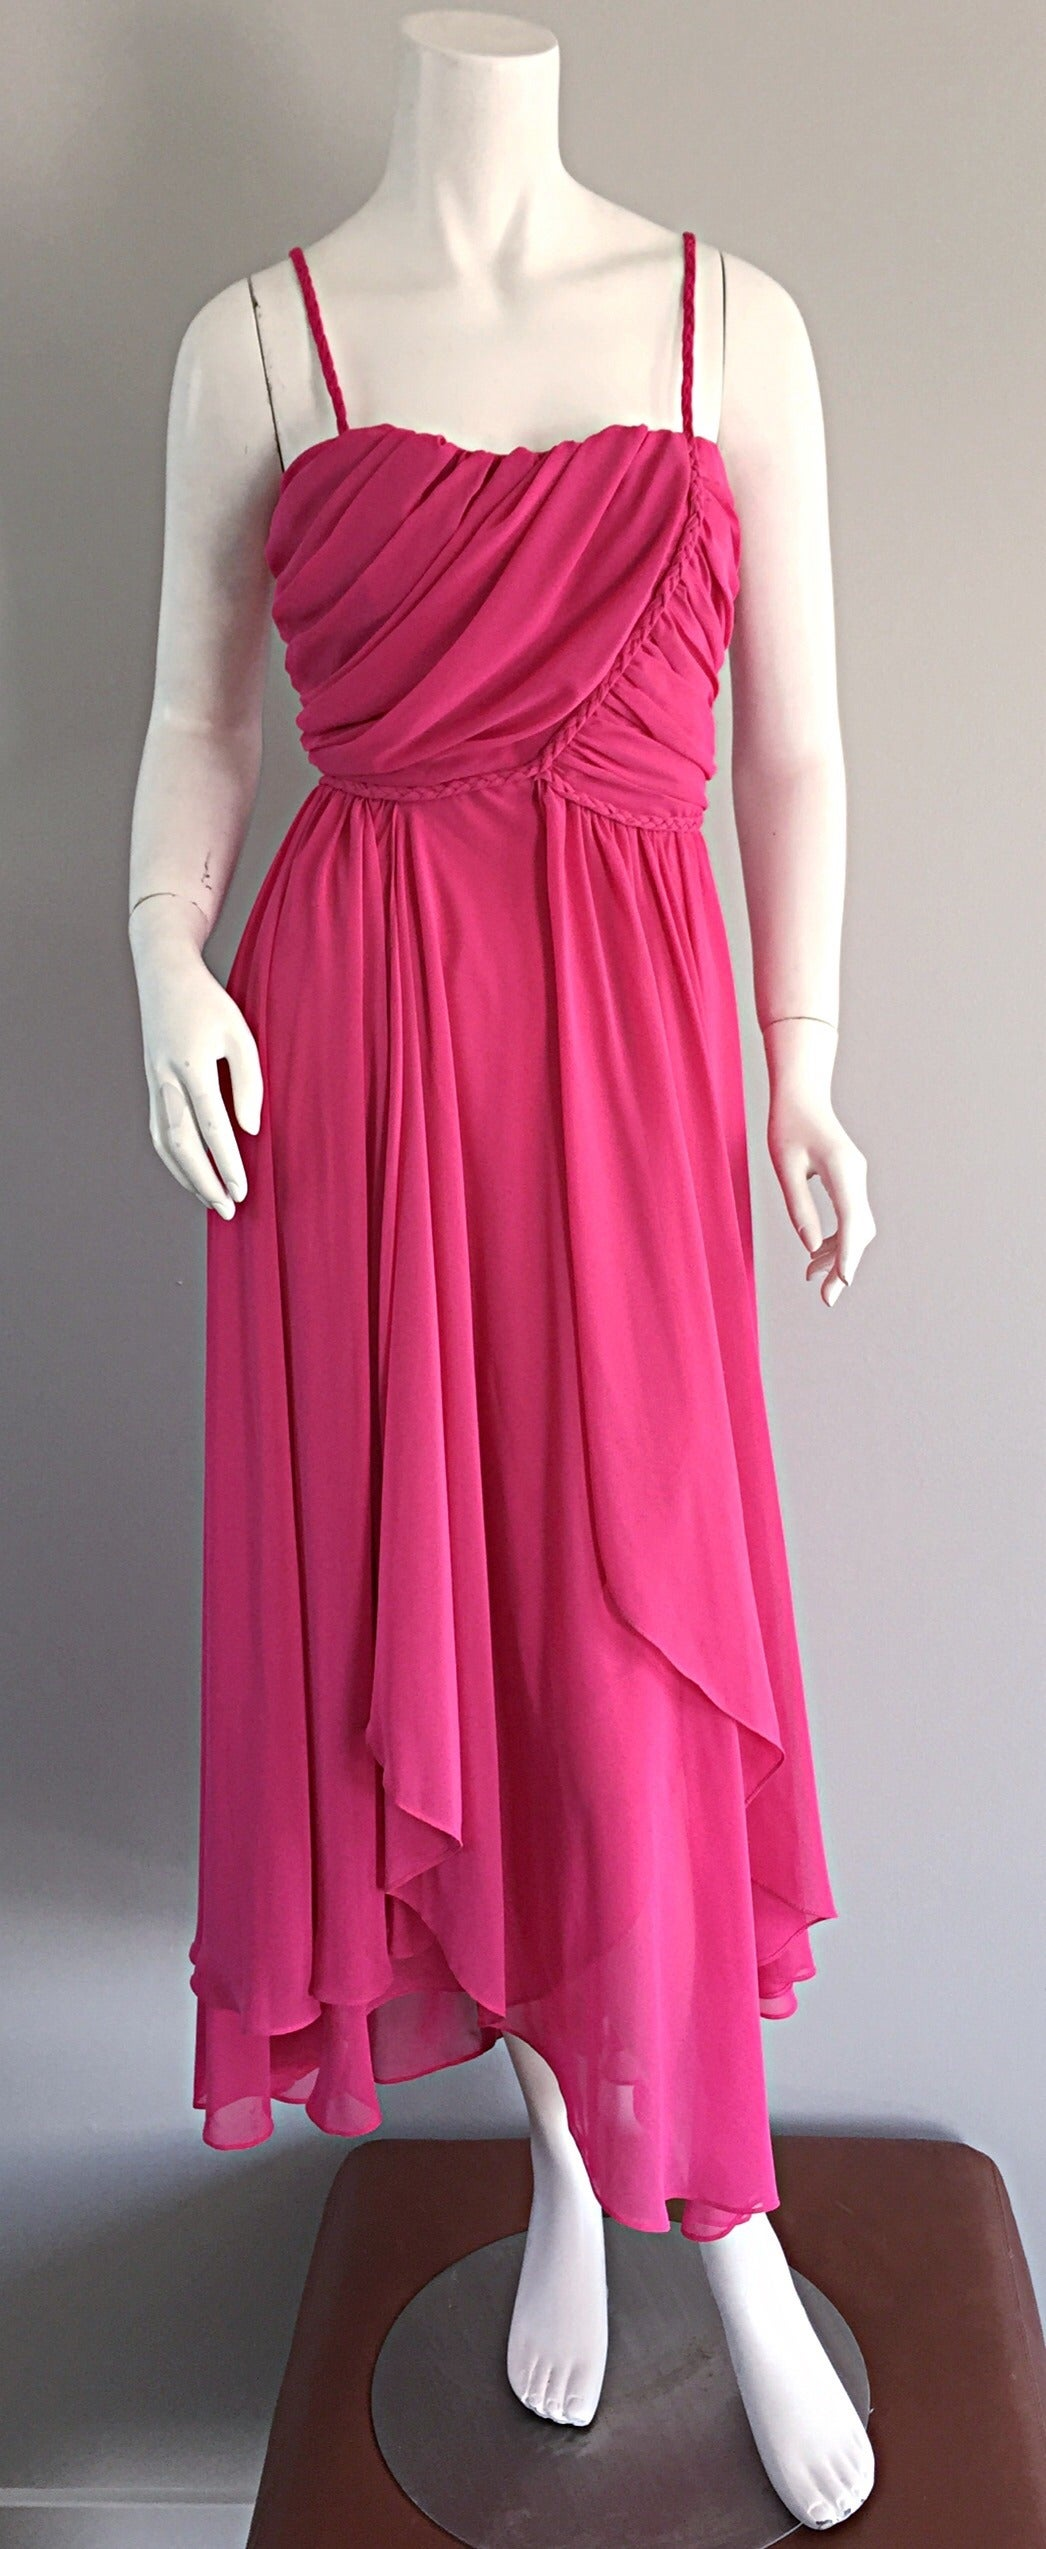 1970s Joy Stevens Hot Pink Vintage Flowy Grecian Disco Dress w/ Braided Details For Sale 1